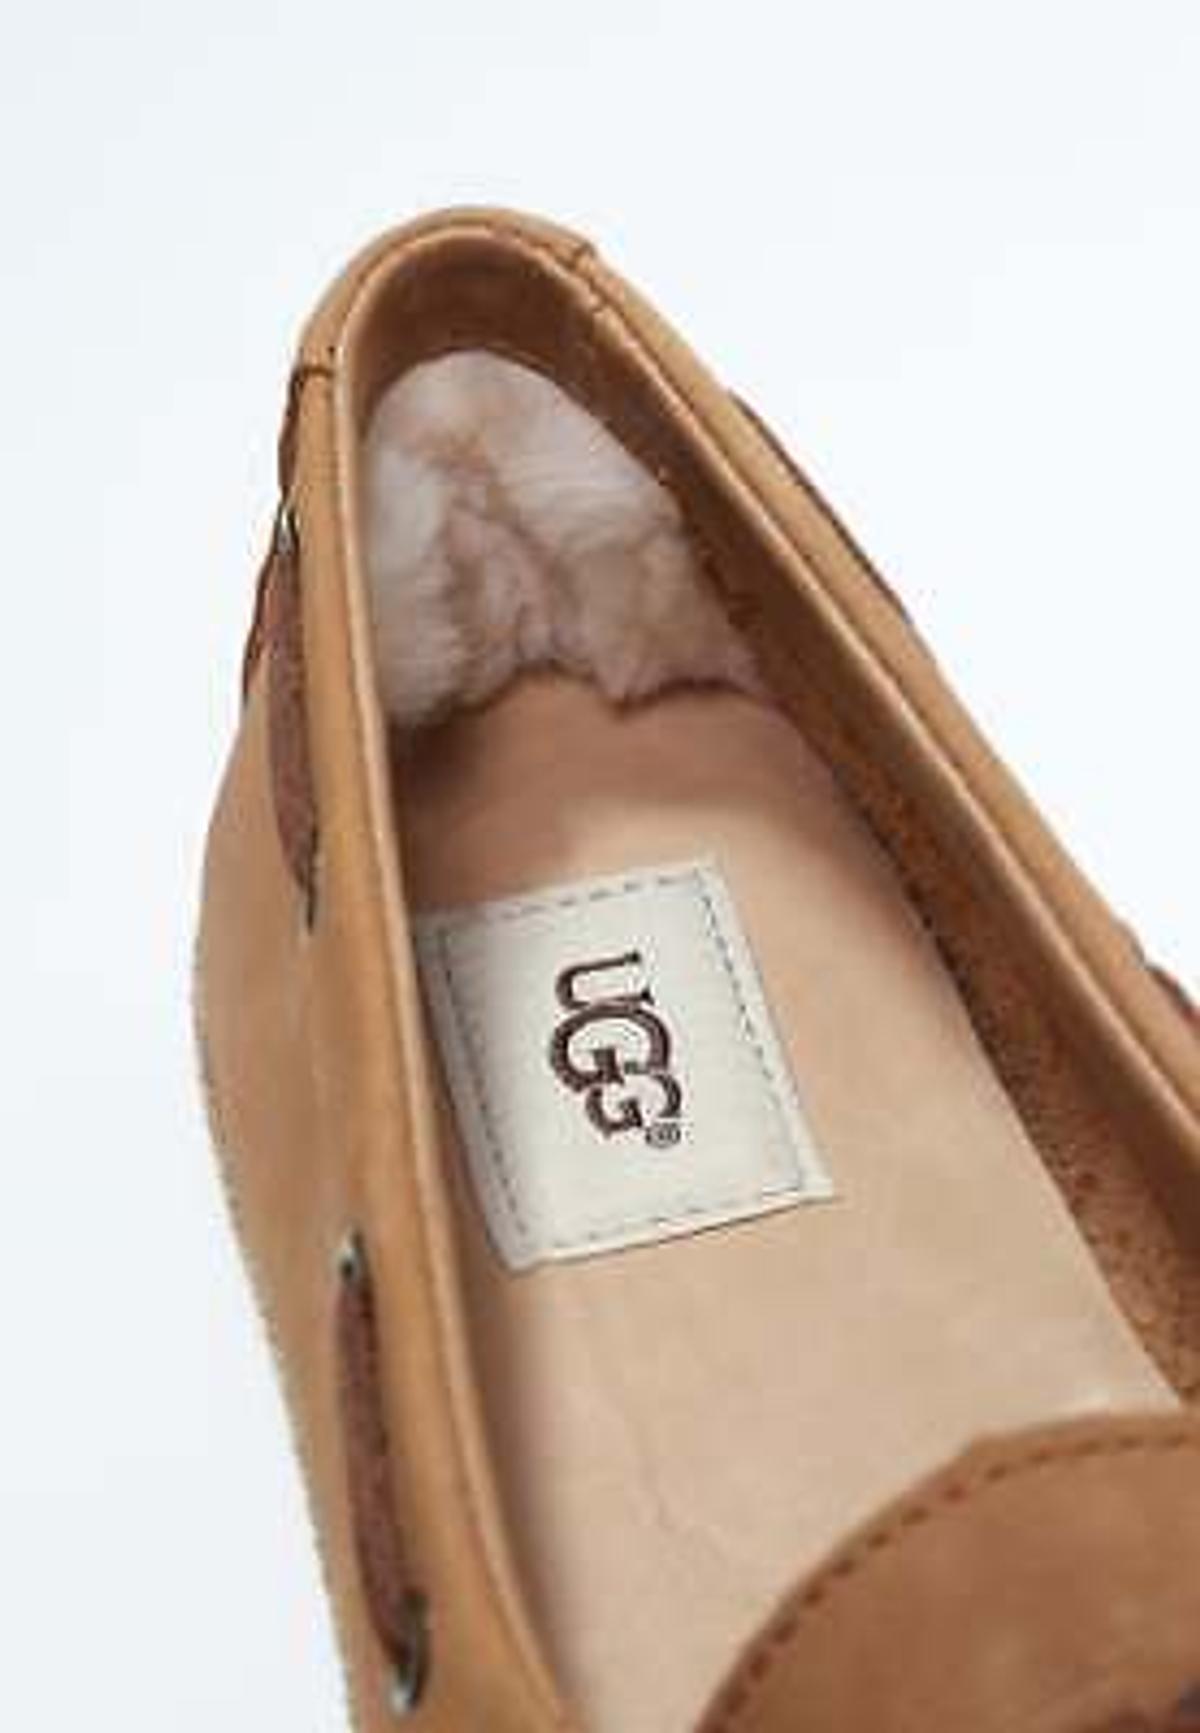 78a628c561a WOMEN'S UGG LOAFERS FOR SALE * in NG5 NOTTINGHAM for £59.00 for sale ...